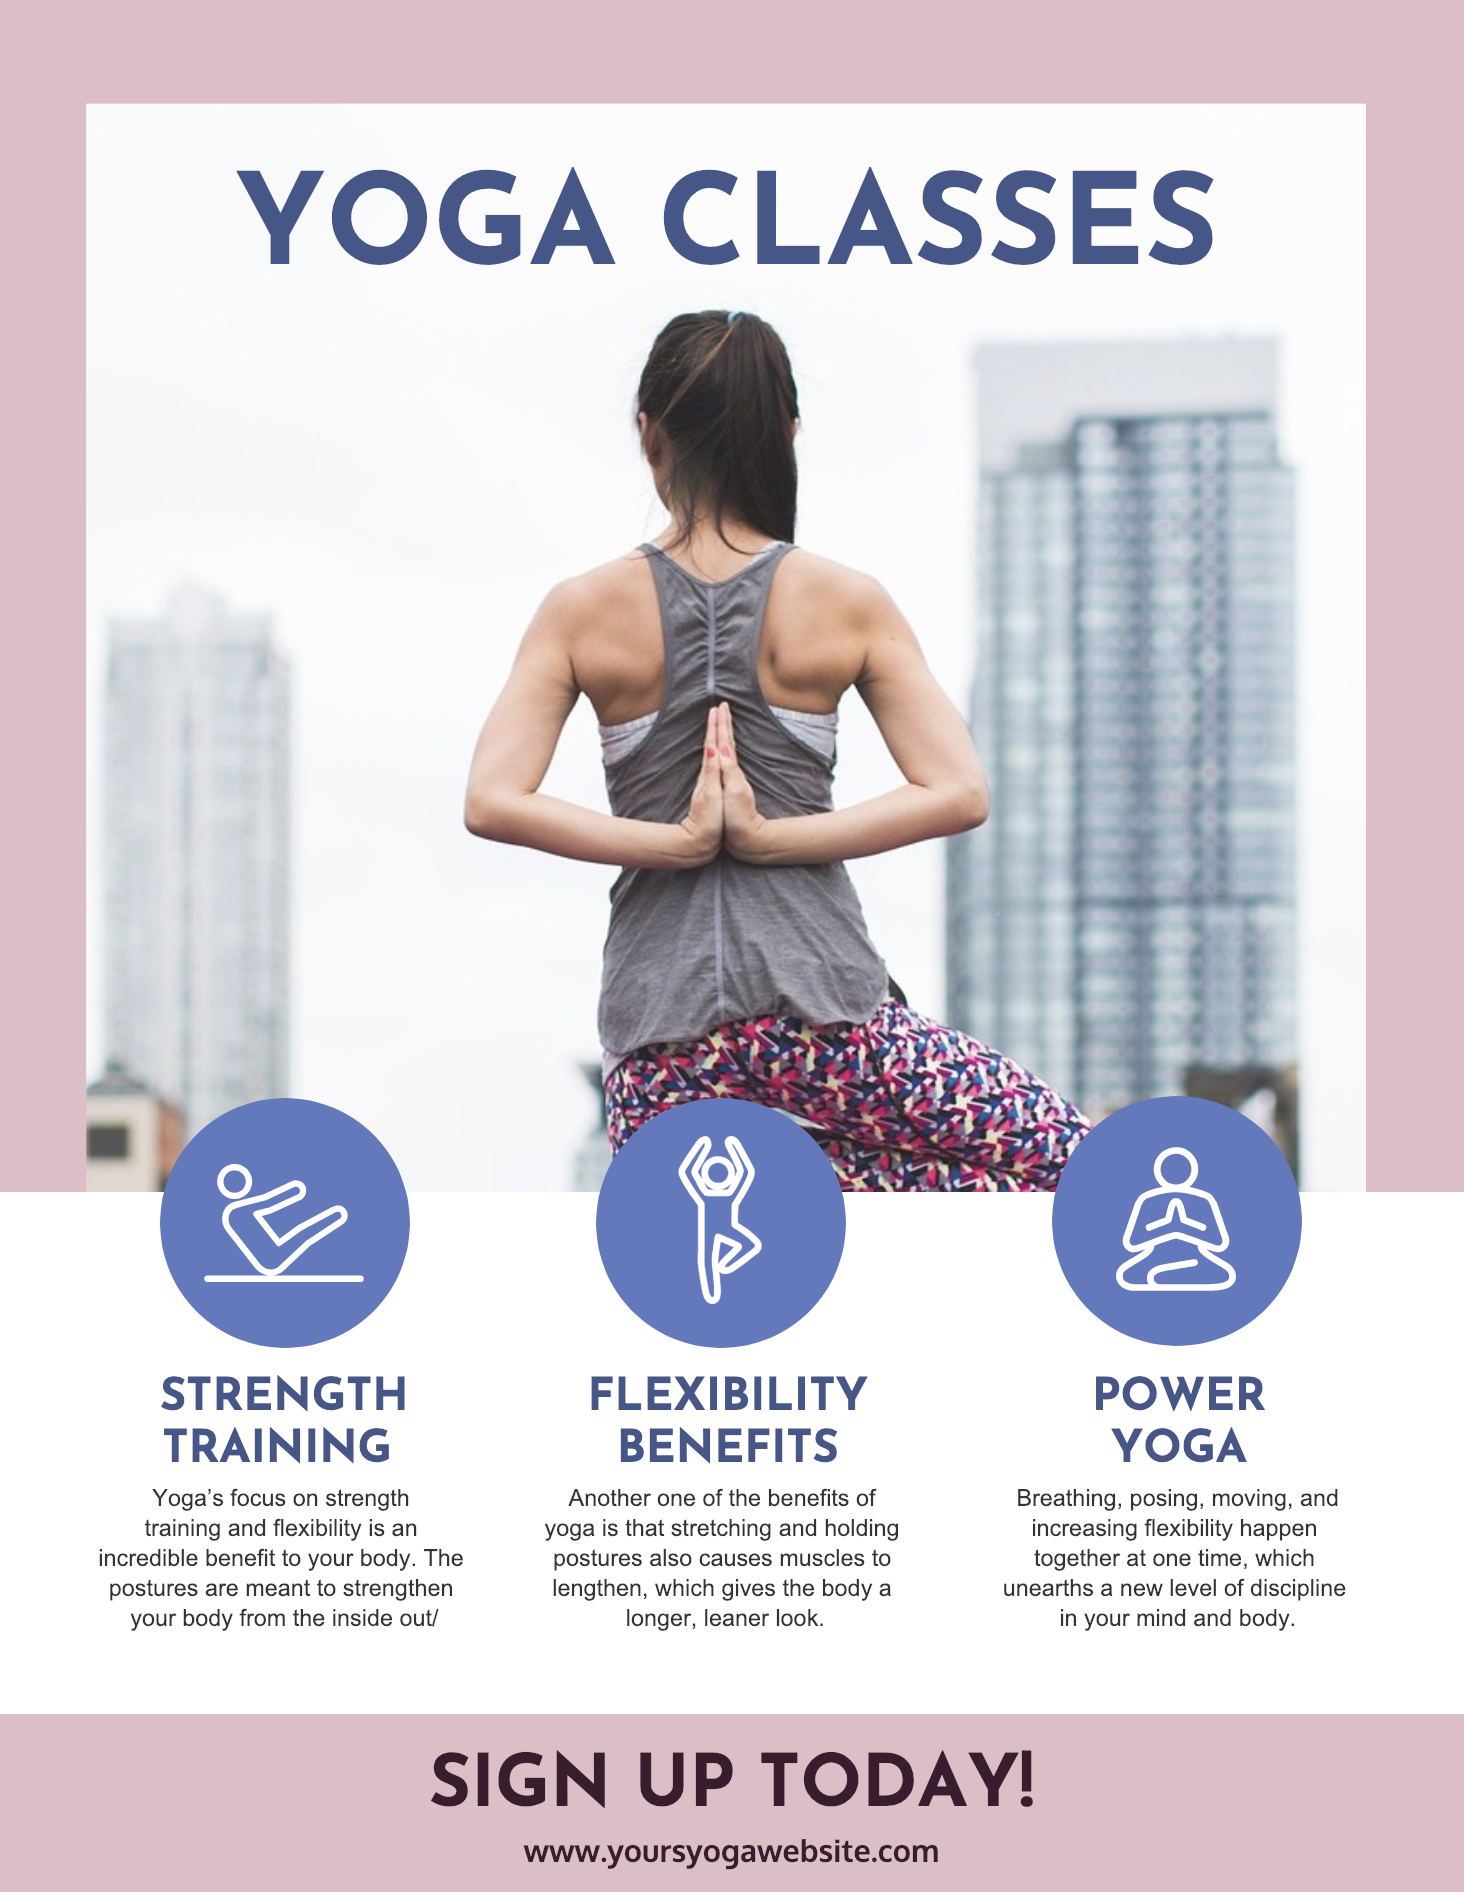 Yoga Class Poster Template Examples Elevate Your Poster Design To The Next Plane With This Yoga Class P In 2020 Class Poster Event Poster Template Yoga Poster Design